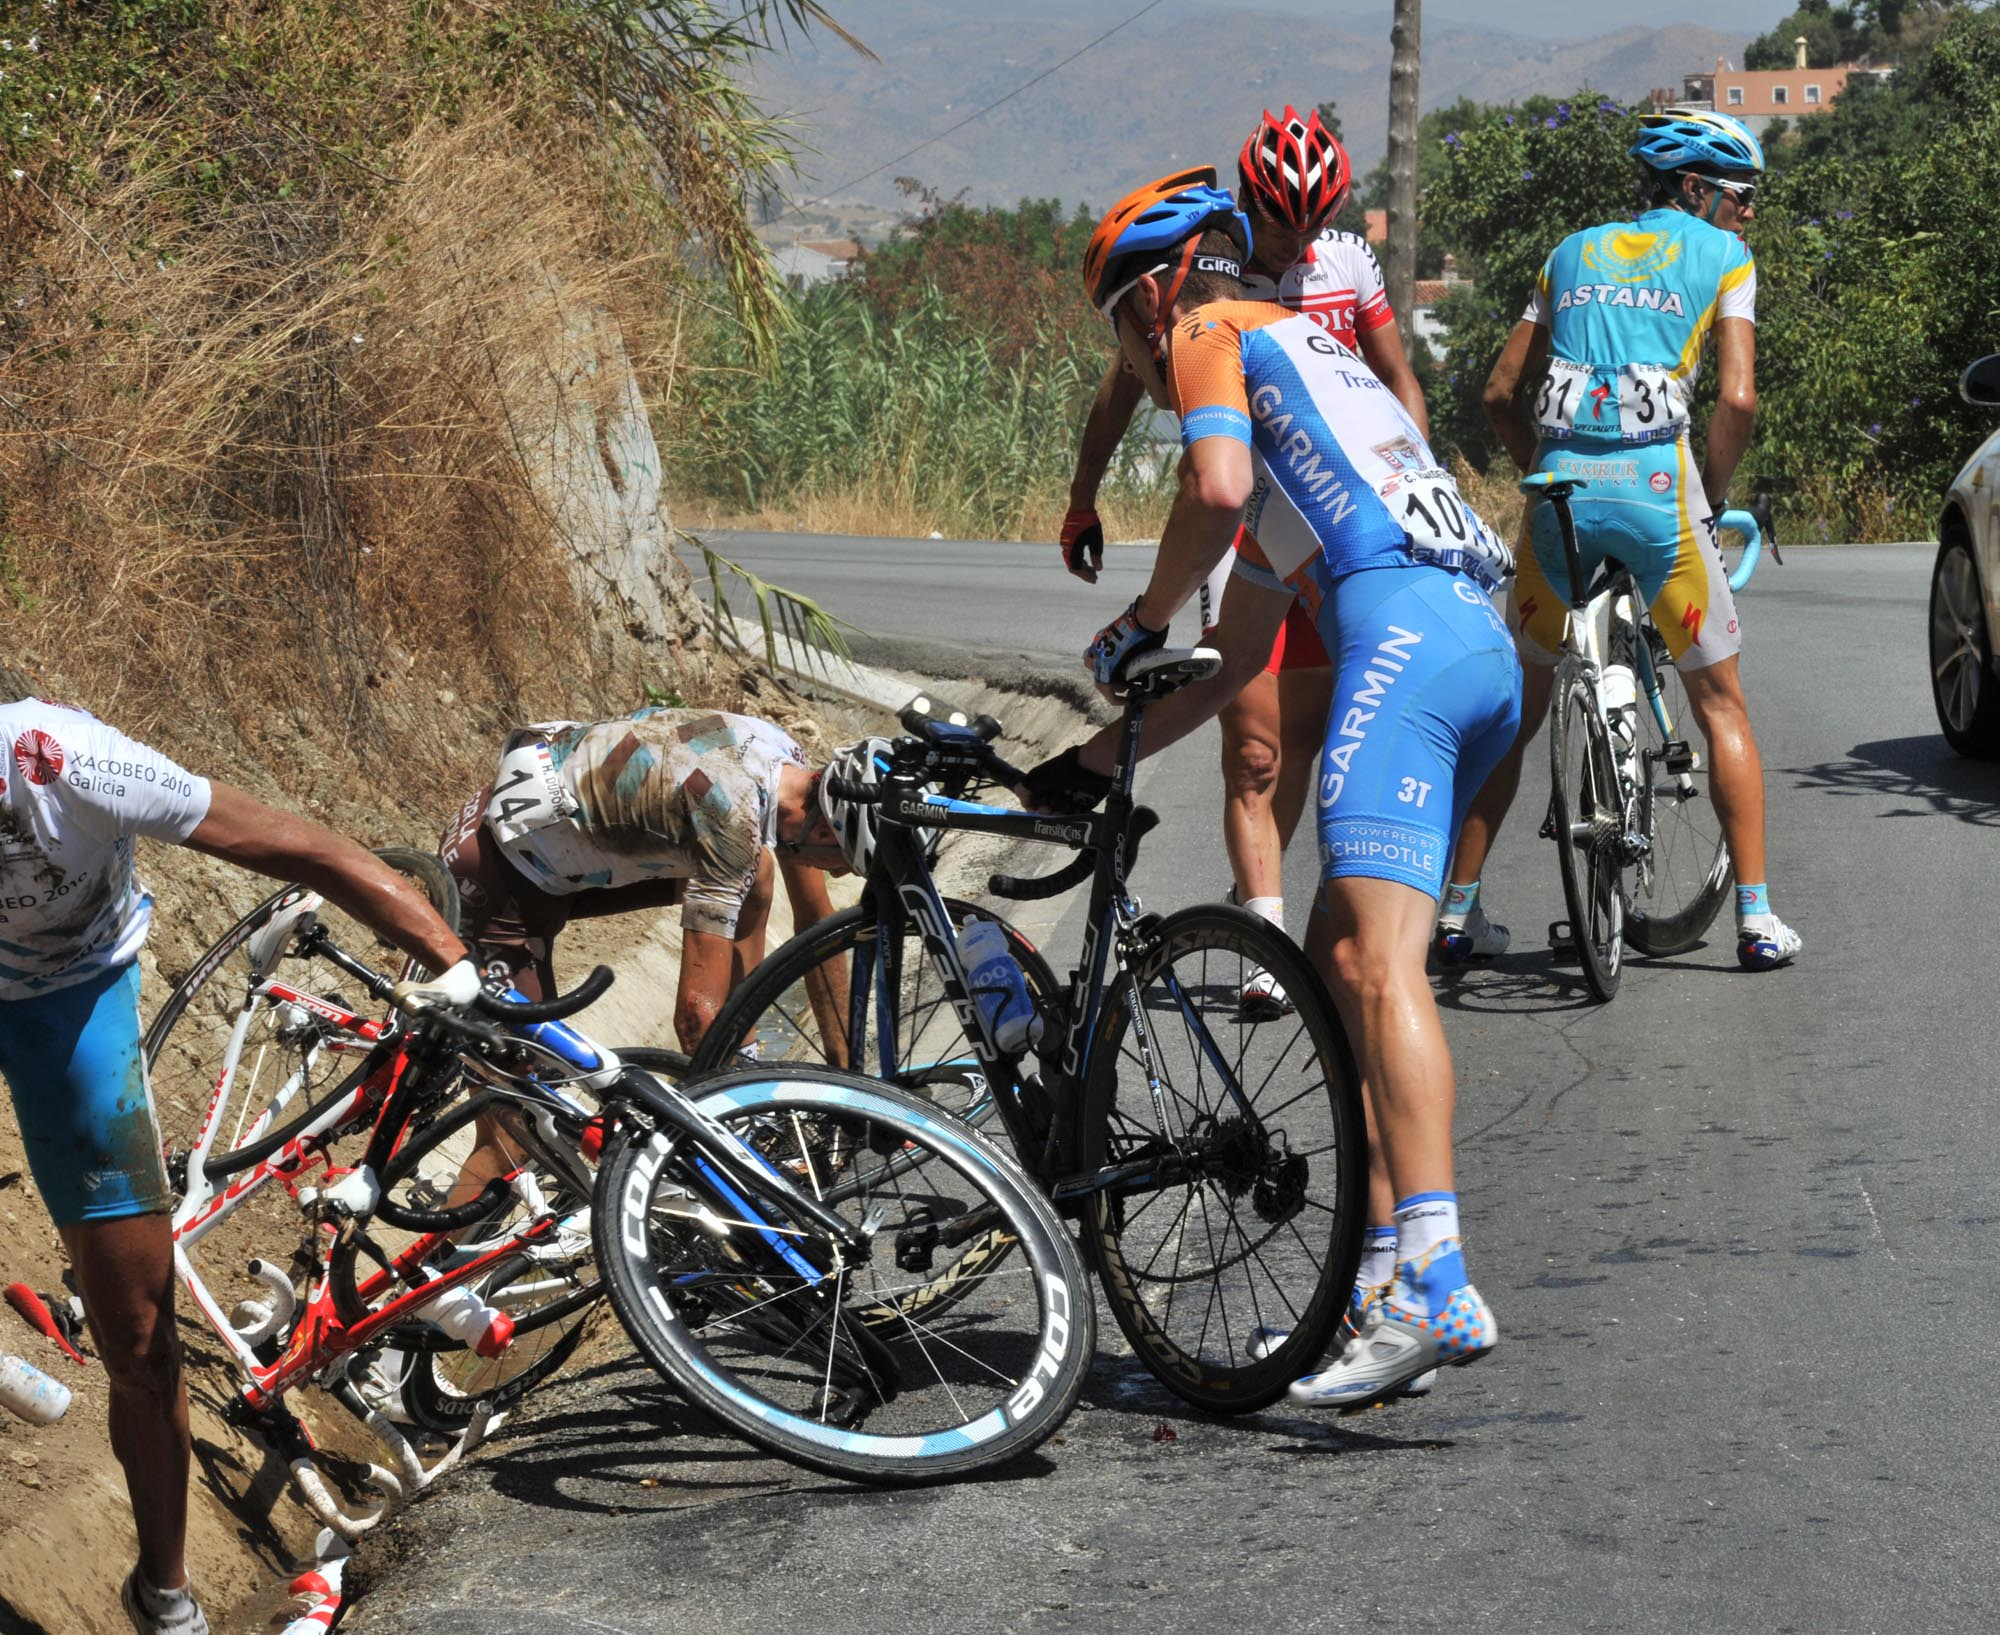 Christian Vande Velde crash, Vuelta a Espana 2010, stage three